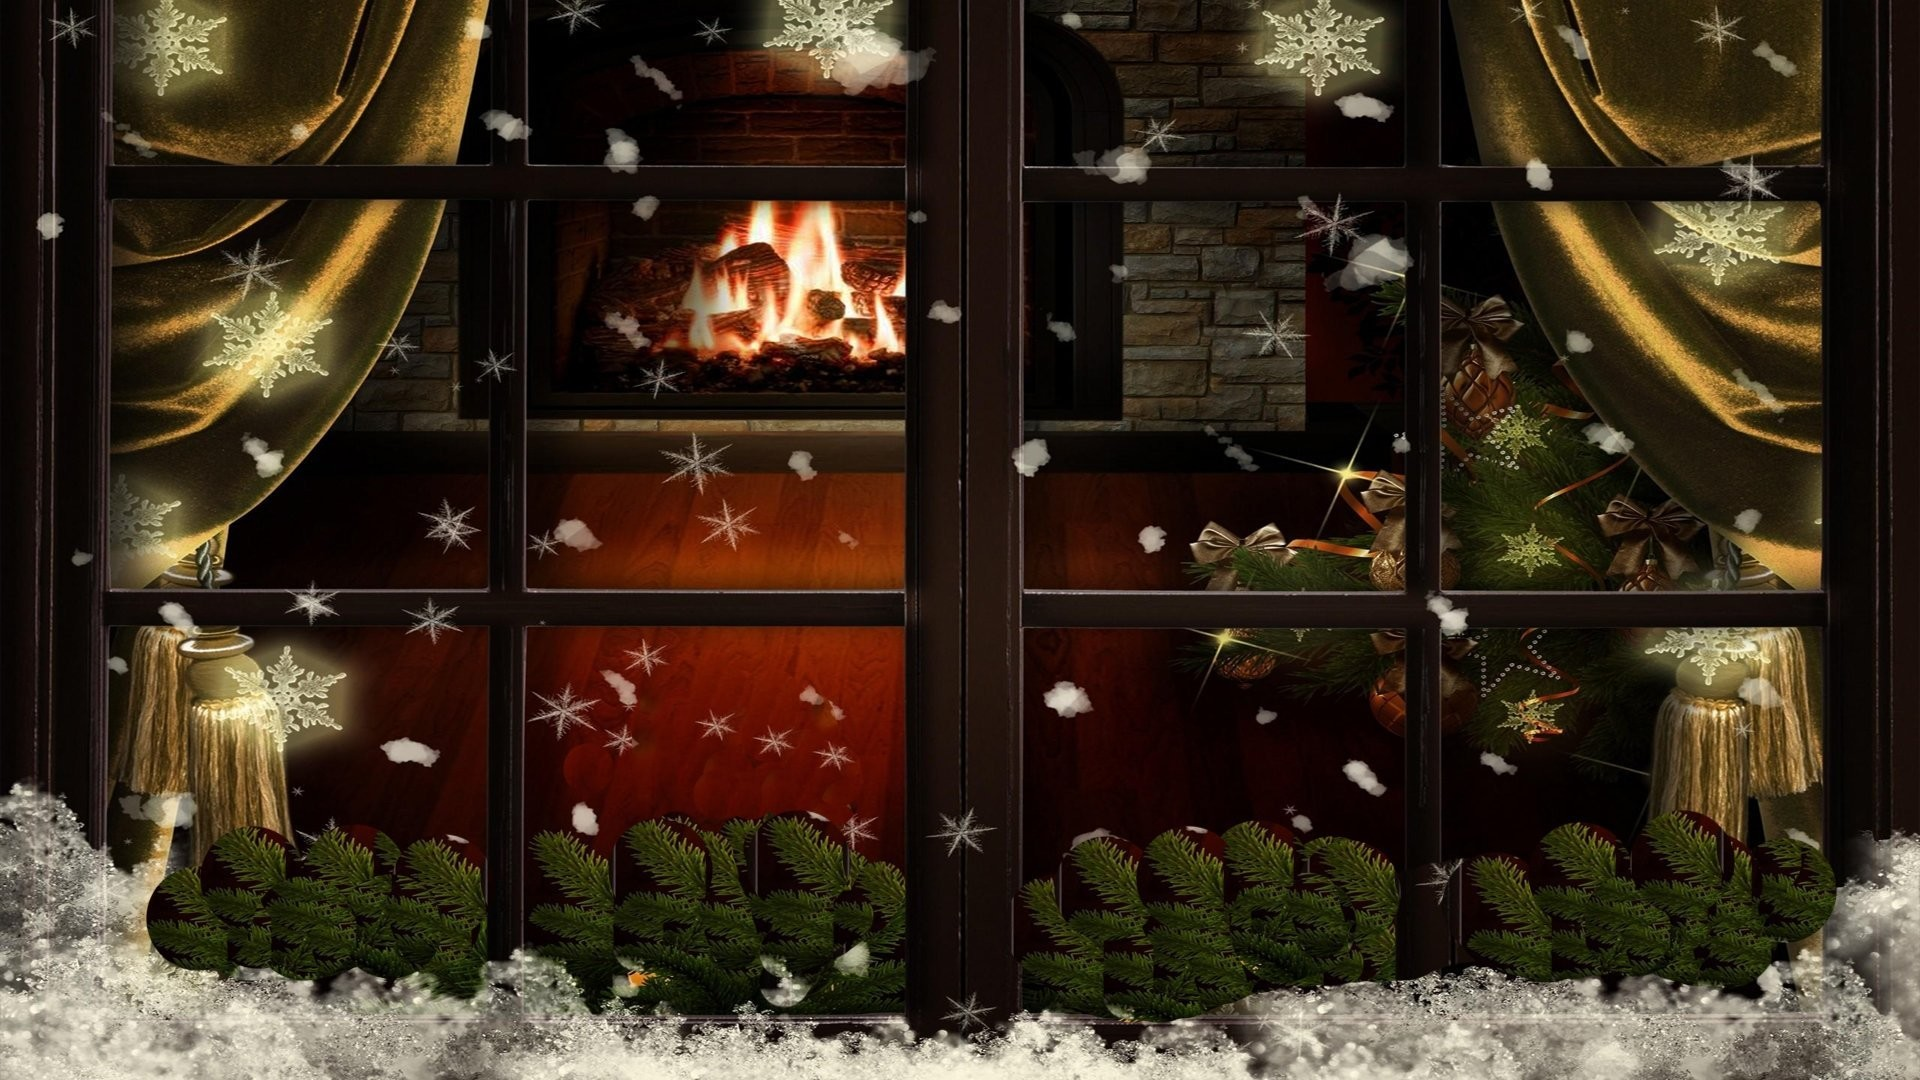 Fireplace Desktop Wallpaper ·① WallpaperTag